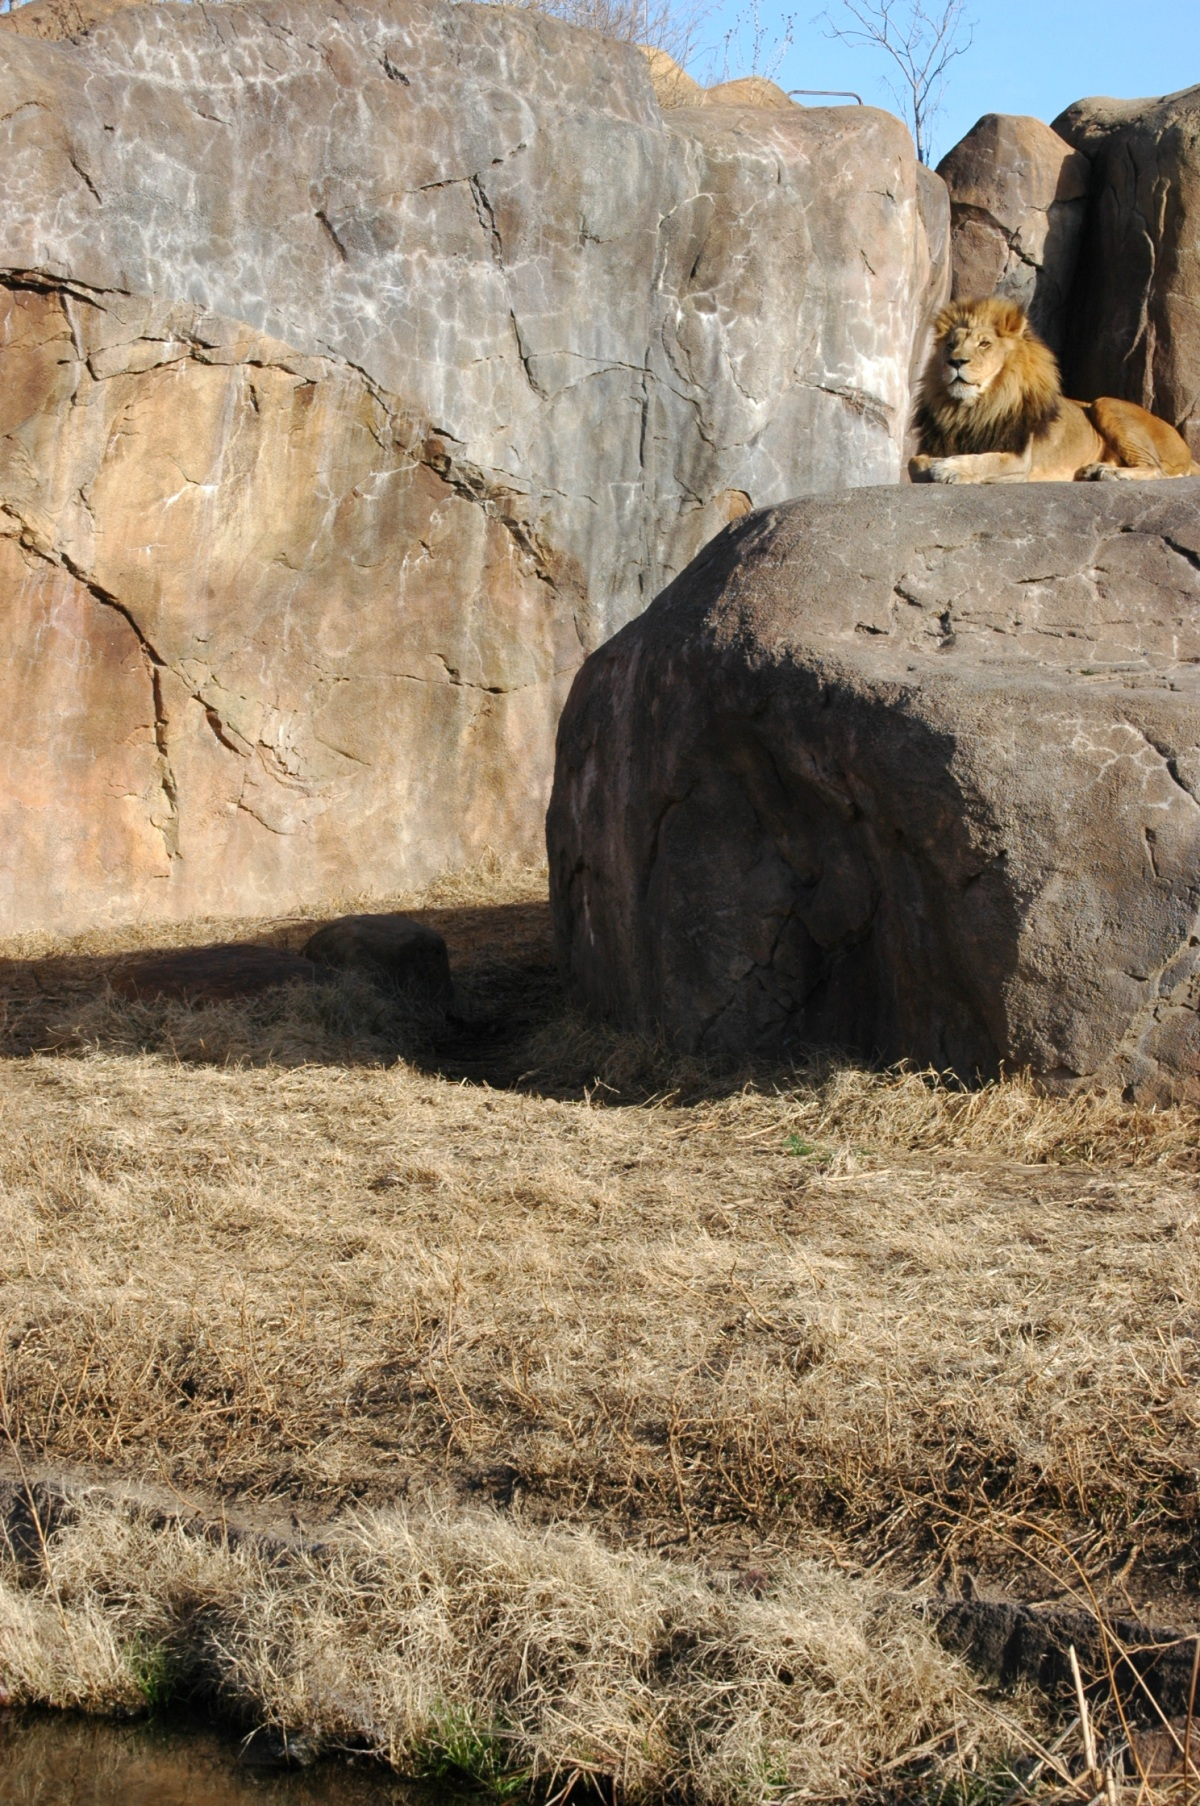 Lion at the Sedgwick County Zoo - Wichita, KS